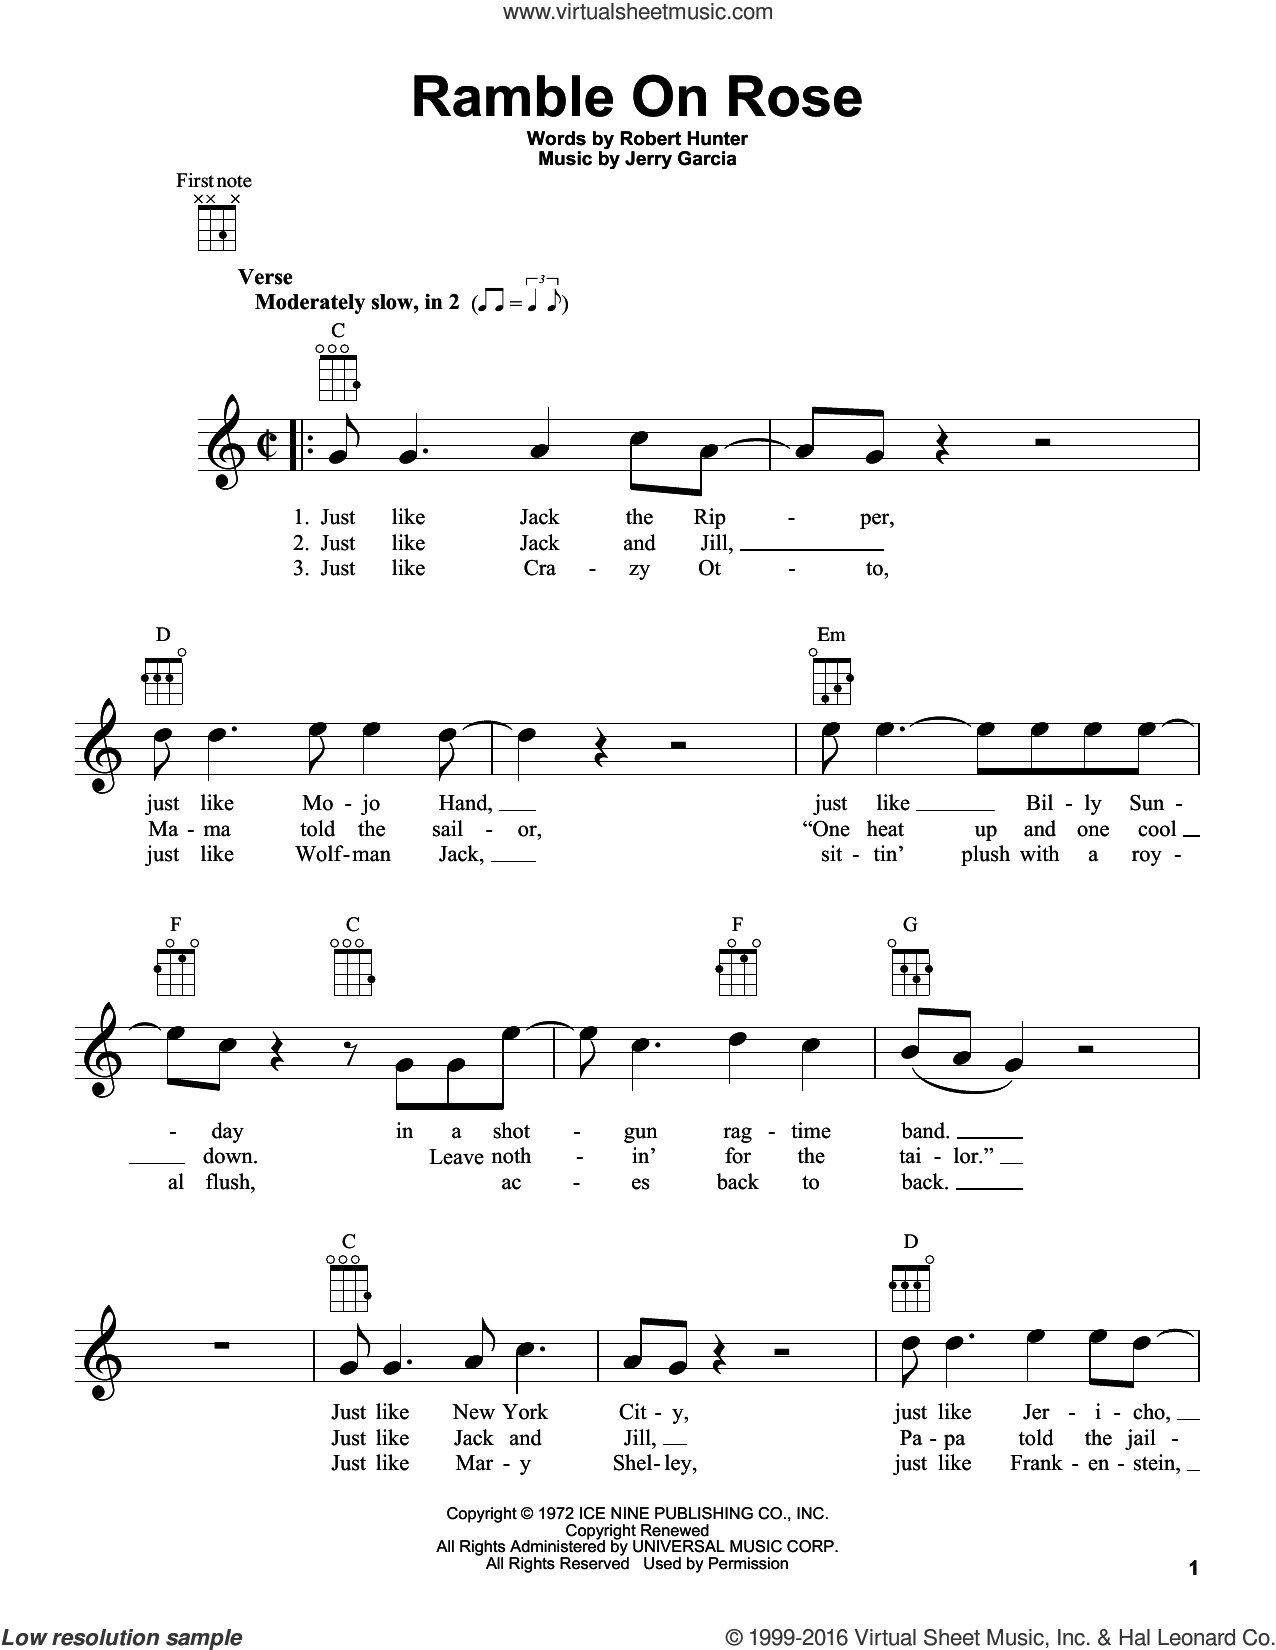 Ramble On Rose sheet music for ukulele by Grateful Dead, Jerry Garcia and Robert Hunter, intermediate skill level